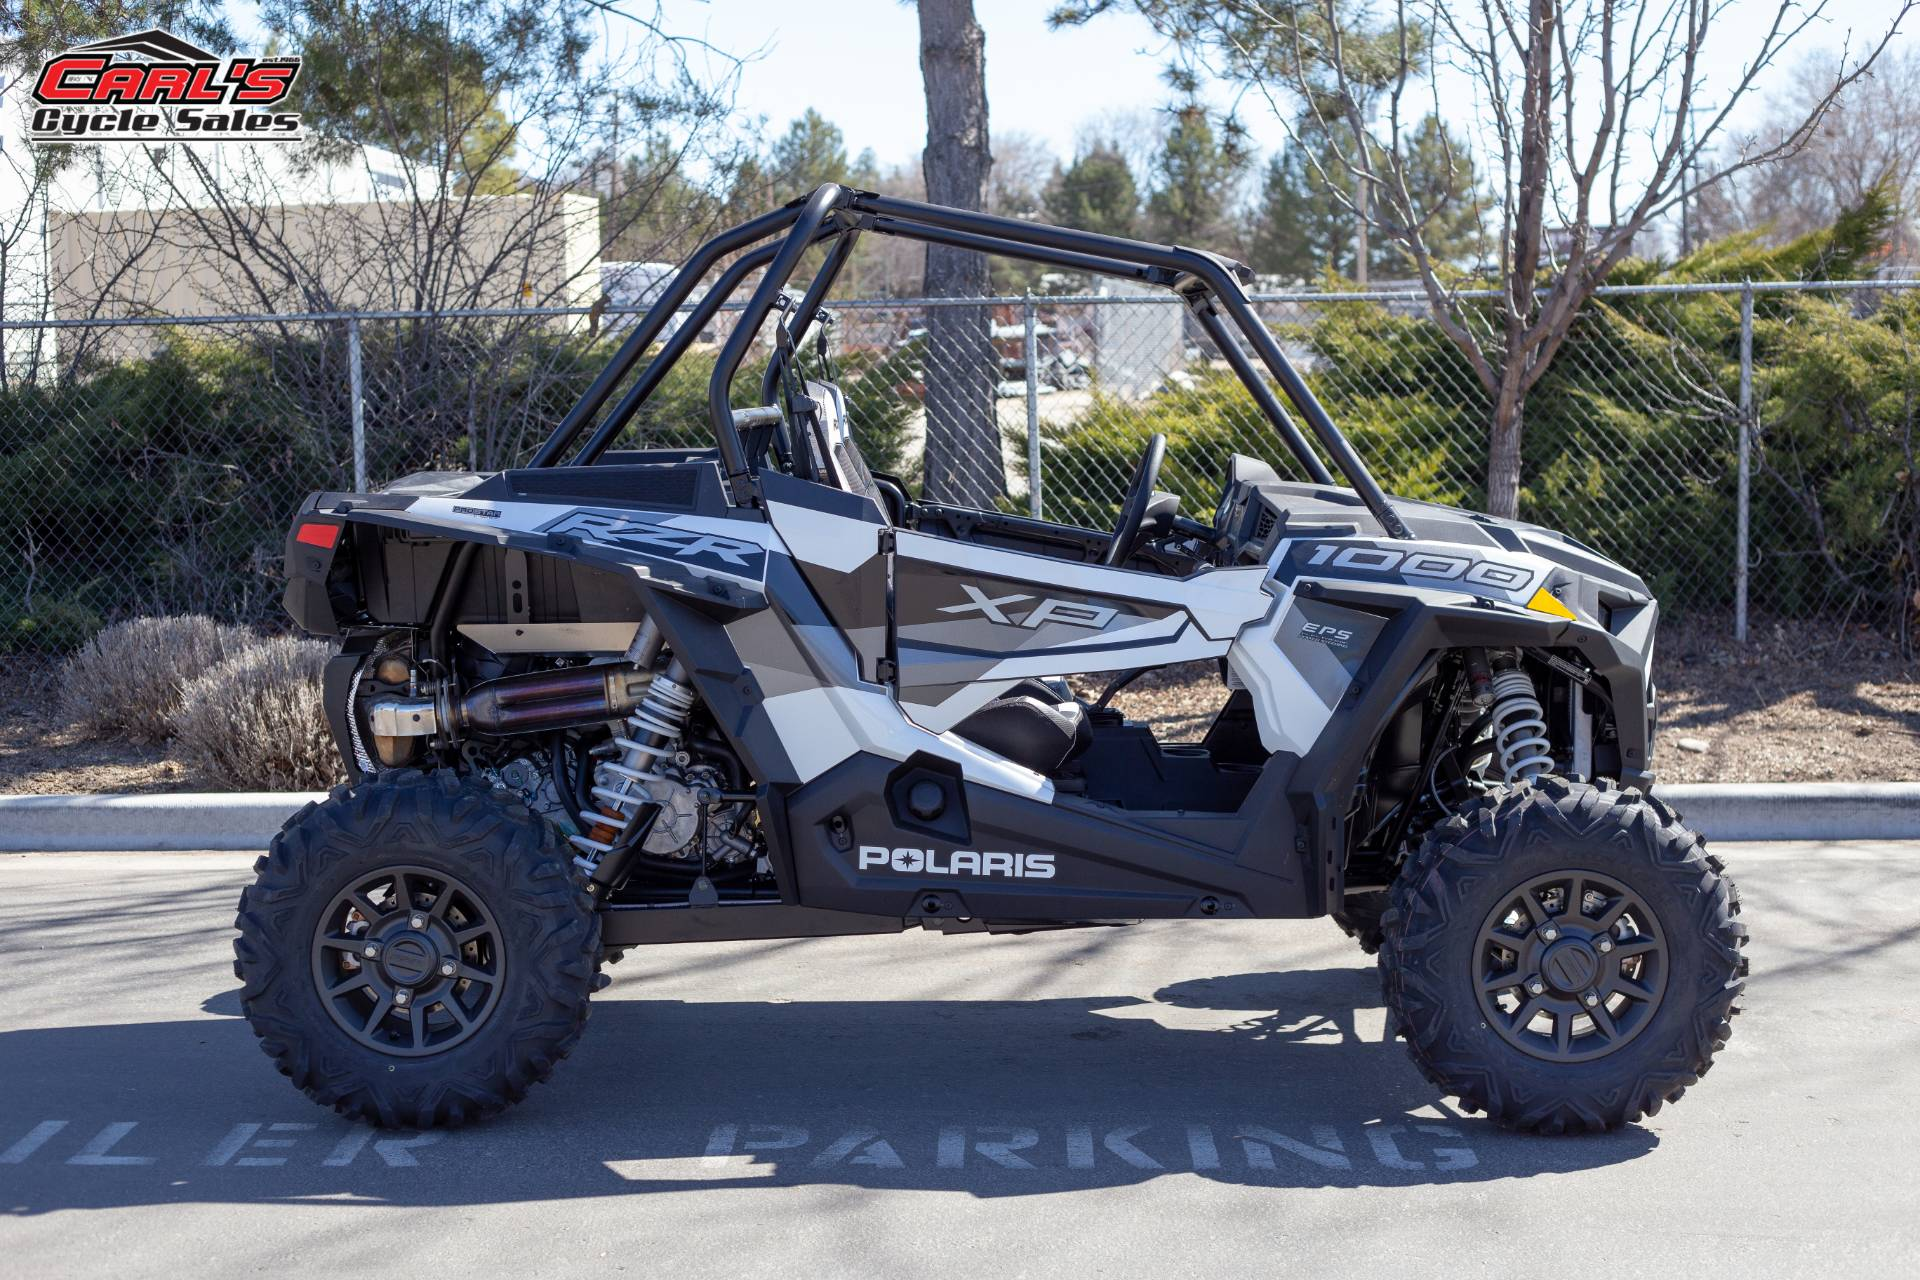 2019 Polaris RZR XP 1000 in Boise, Idaho - Photo 5